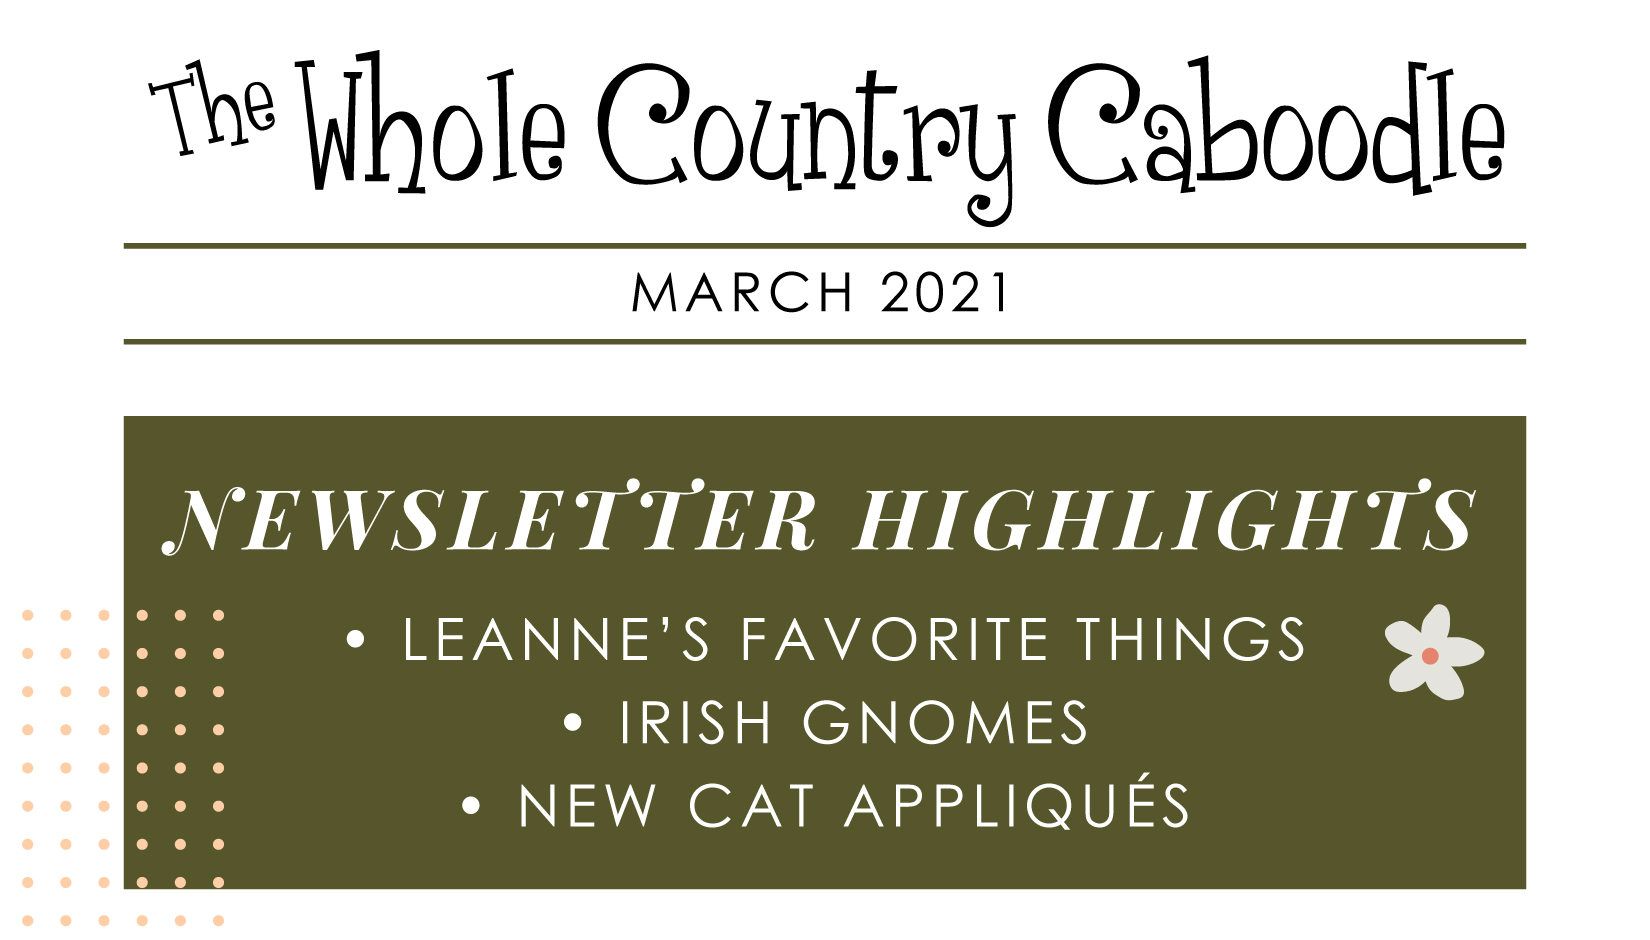 Check out some of Leanne's favorite tools and products as well as new Irish Gnomes!